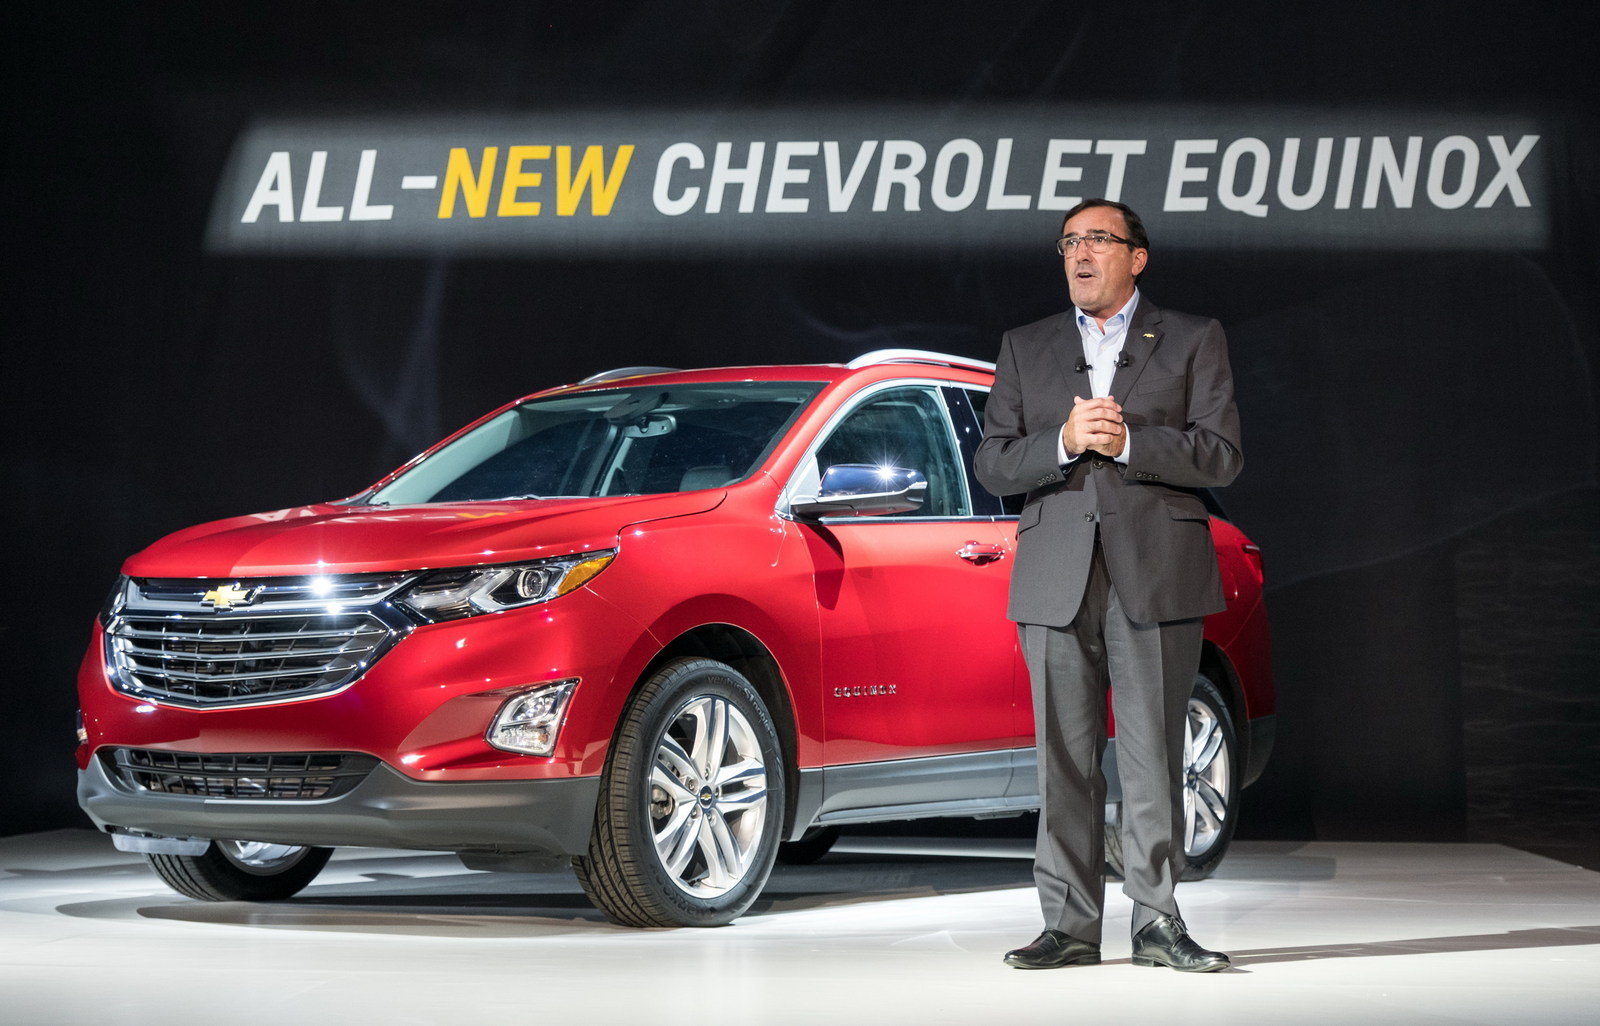 2018 chevrolet equinox picture 689232 car review top speed. Black Bedroom Furniture Sets. Home Design Ideas